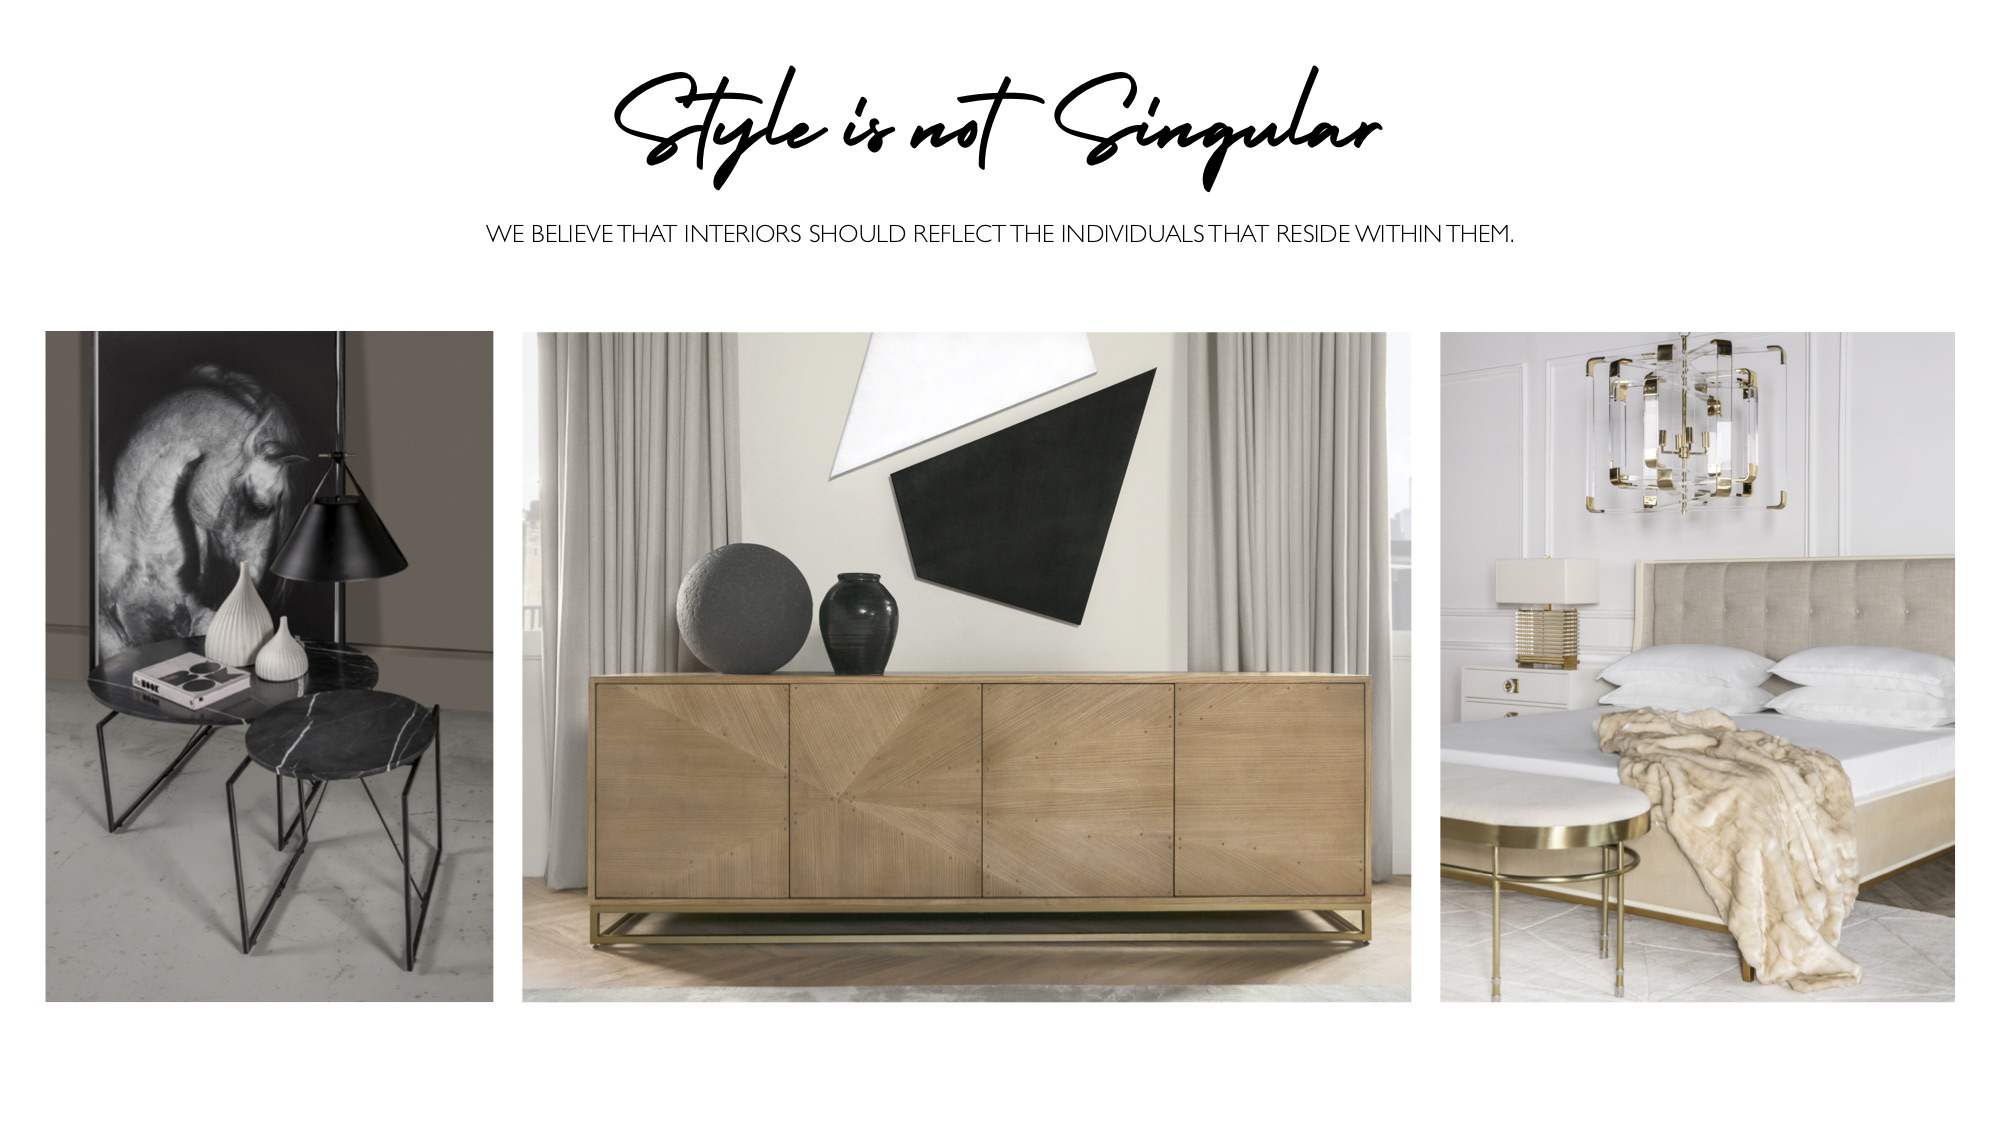 Previously known to the trade as Resource Decor, the firm has fully rebranded its different businesses under the Sonder umbrella. Read on to learn about two of the designer collaborations they'll be presenting at this fall's High Point Market.